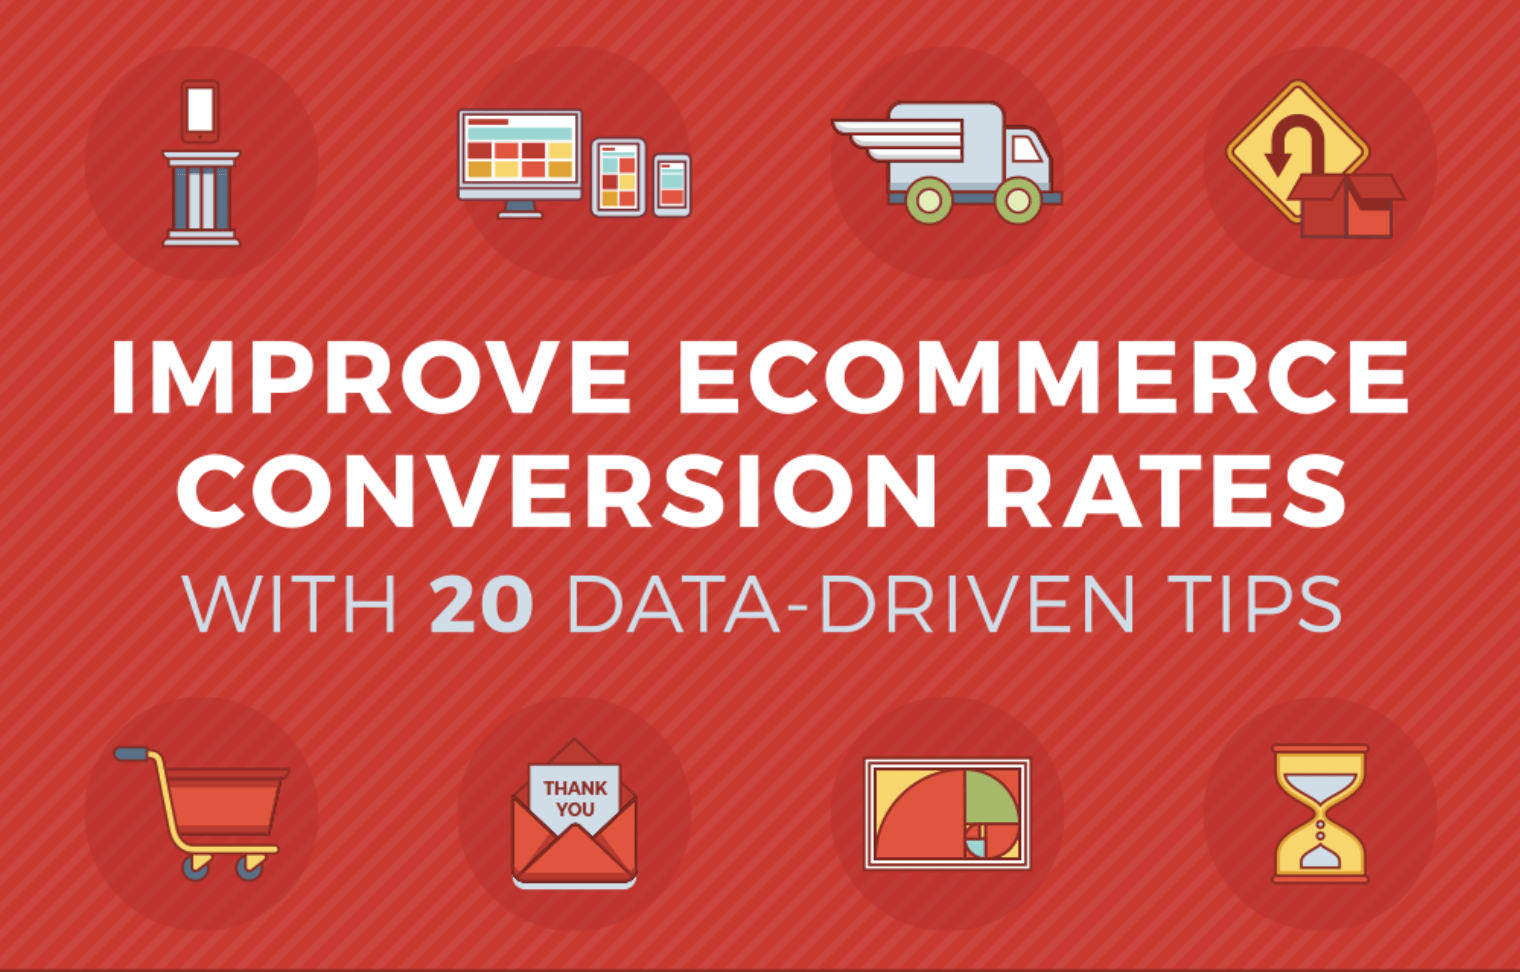 The Top 20 Ways To Increase Ecommerce Conversion